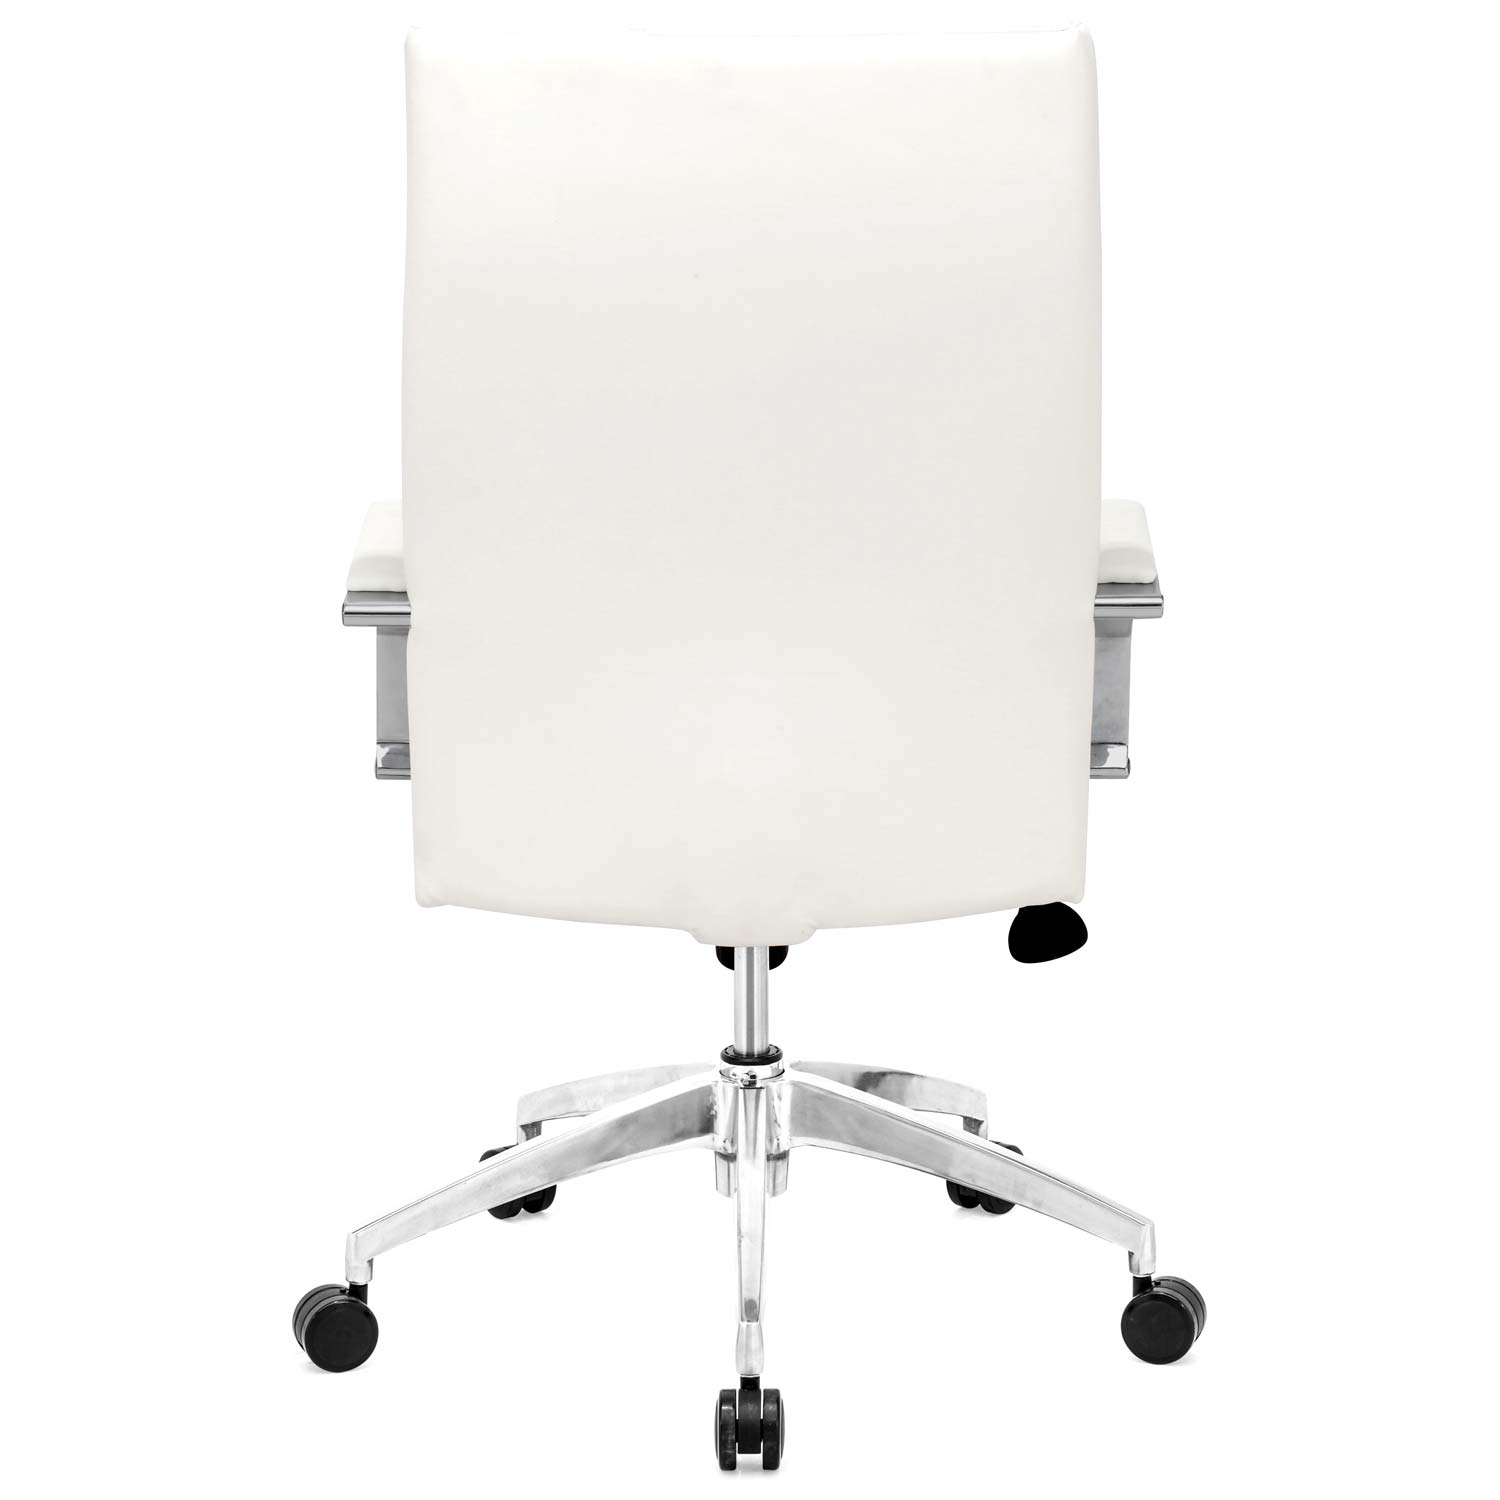 office chair comfort accessories invisible for sale director chrome steel white dcg